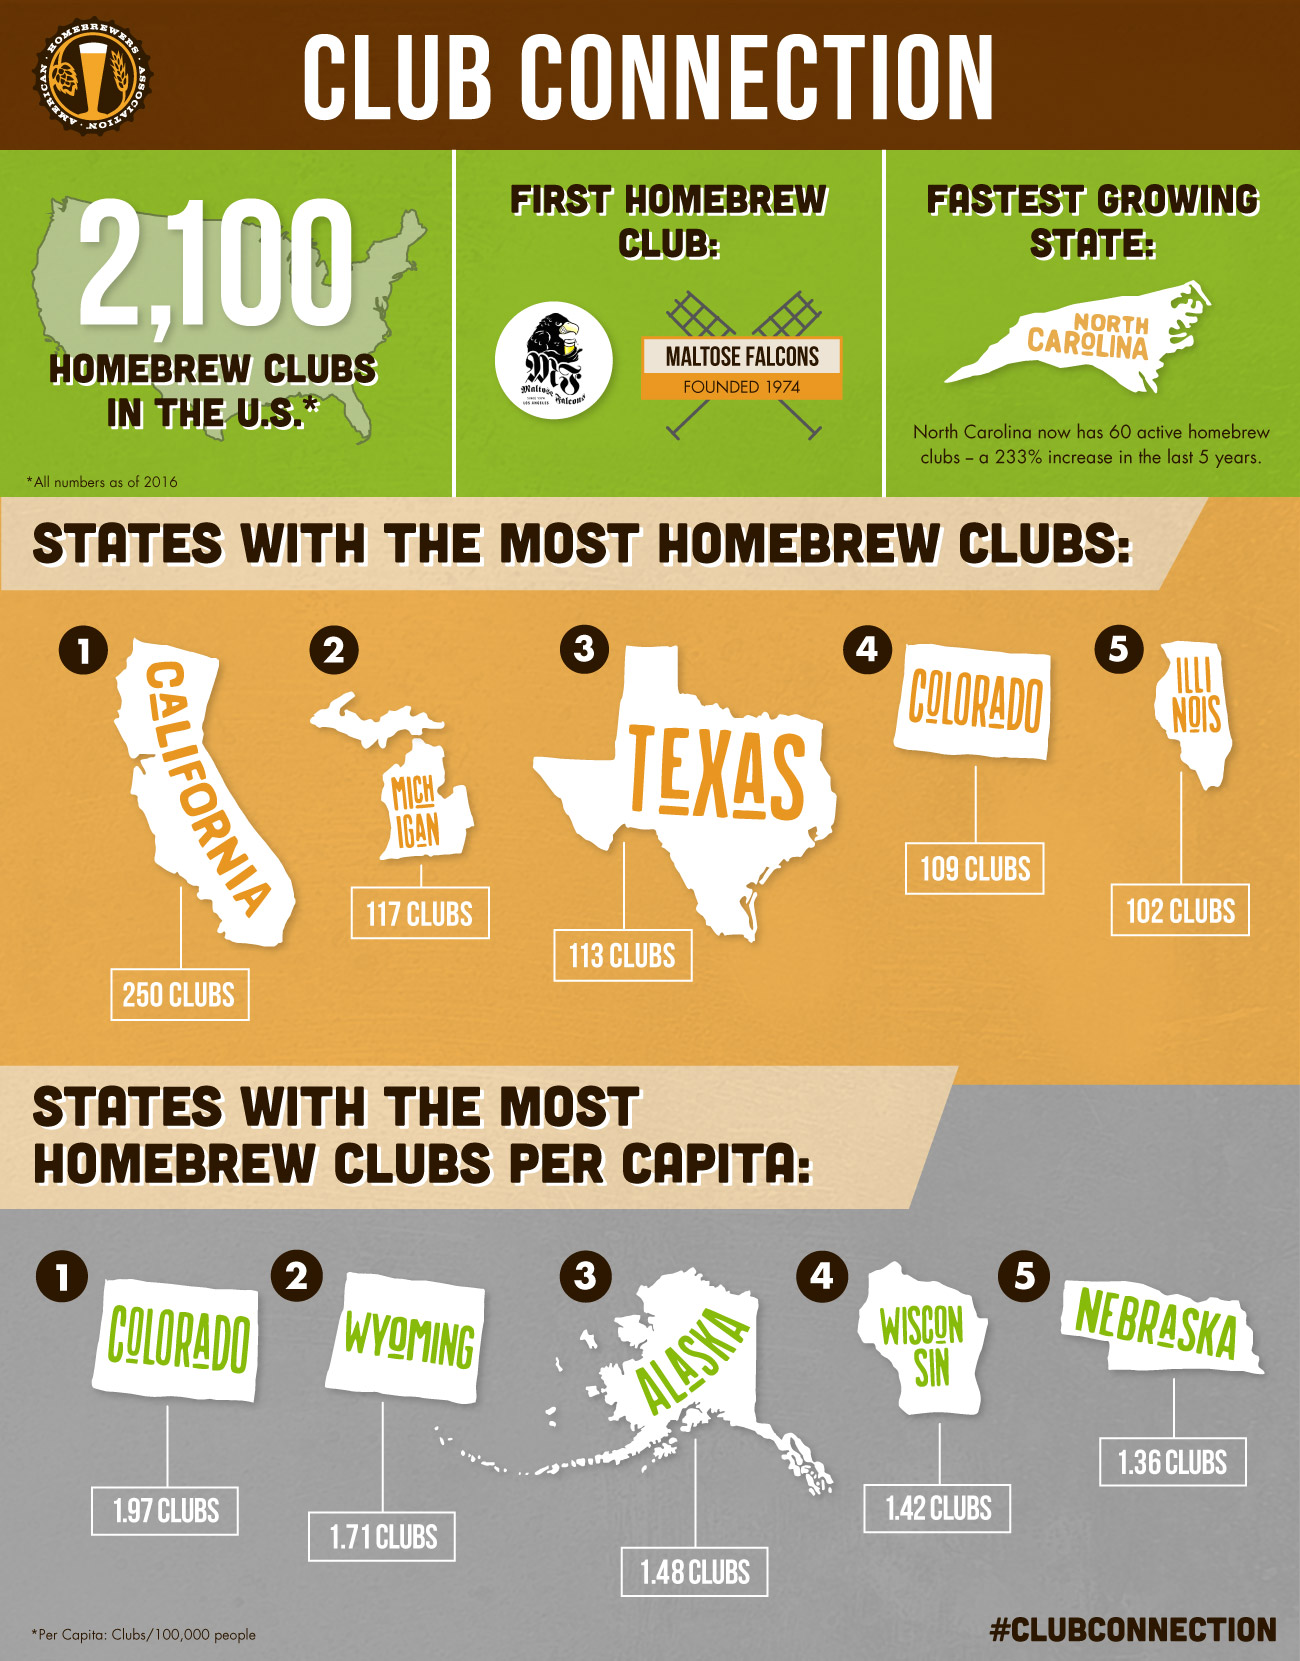 Club Connection - Homebrew Club Statistics